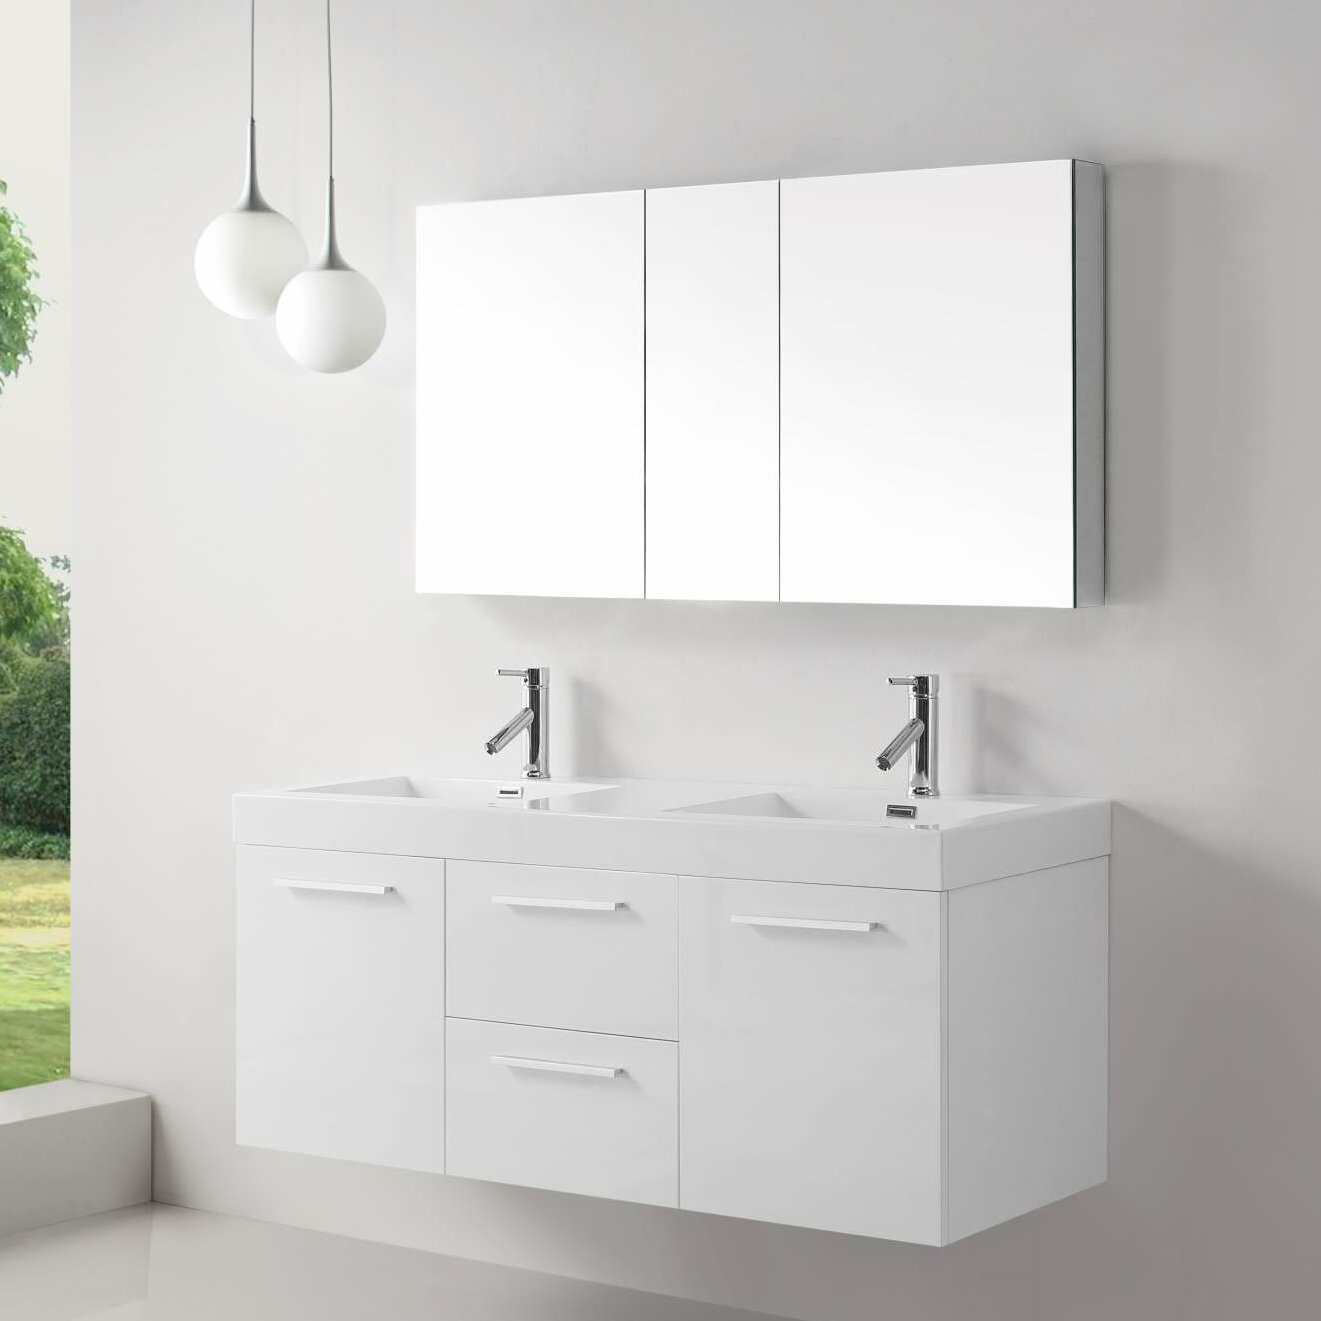 Virtu Midori 54 Double Floating Bathroom Vanity Set Reviews Wayfair